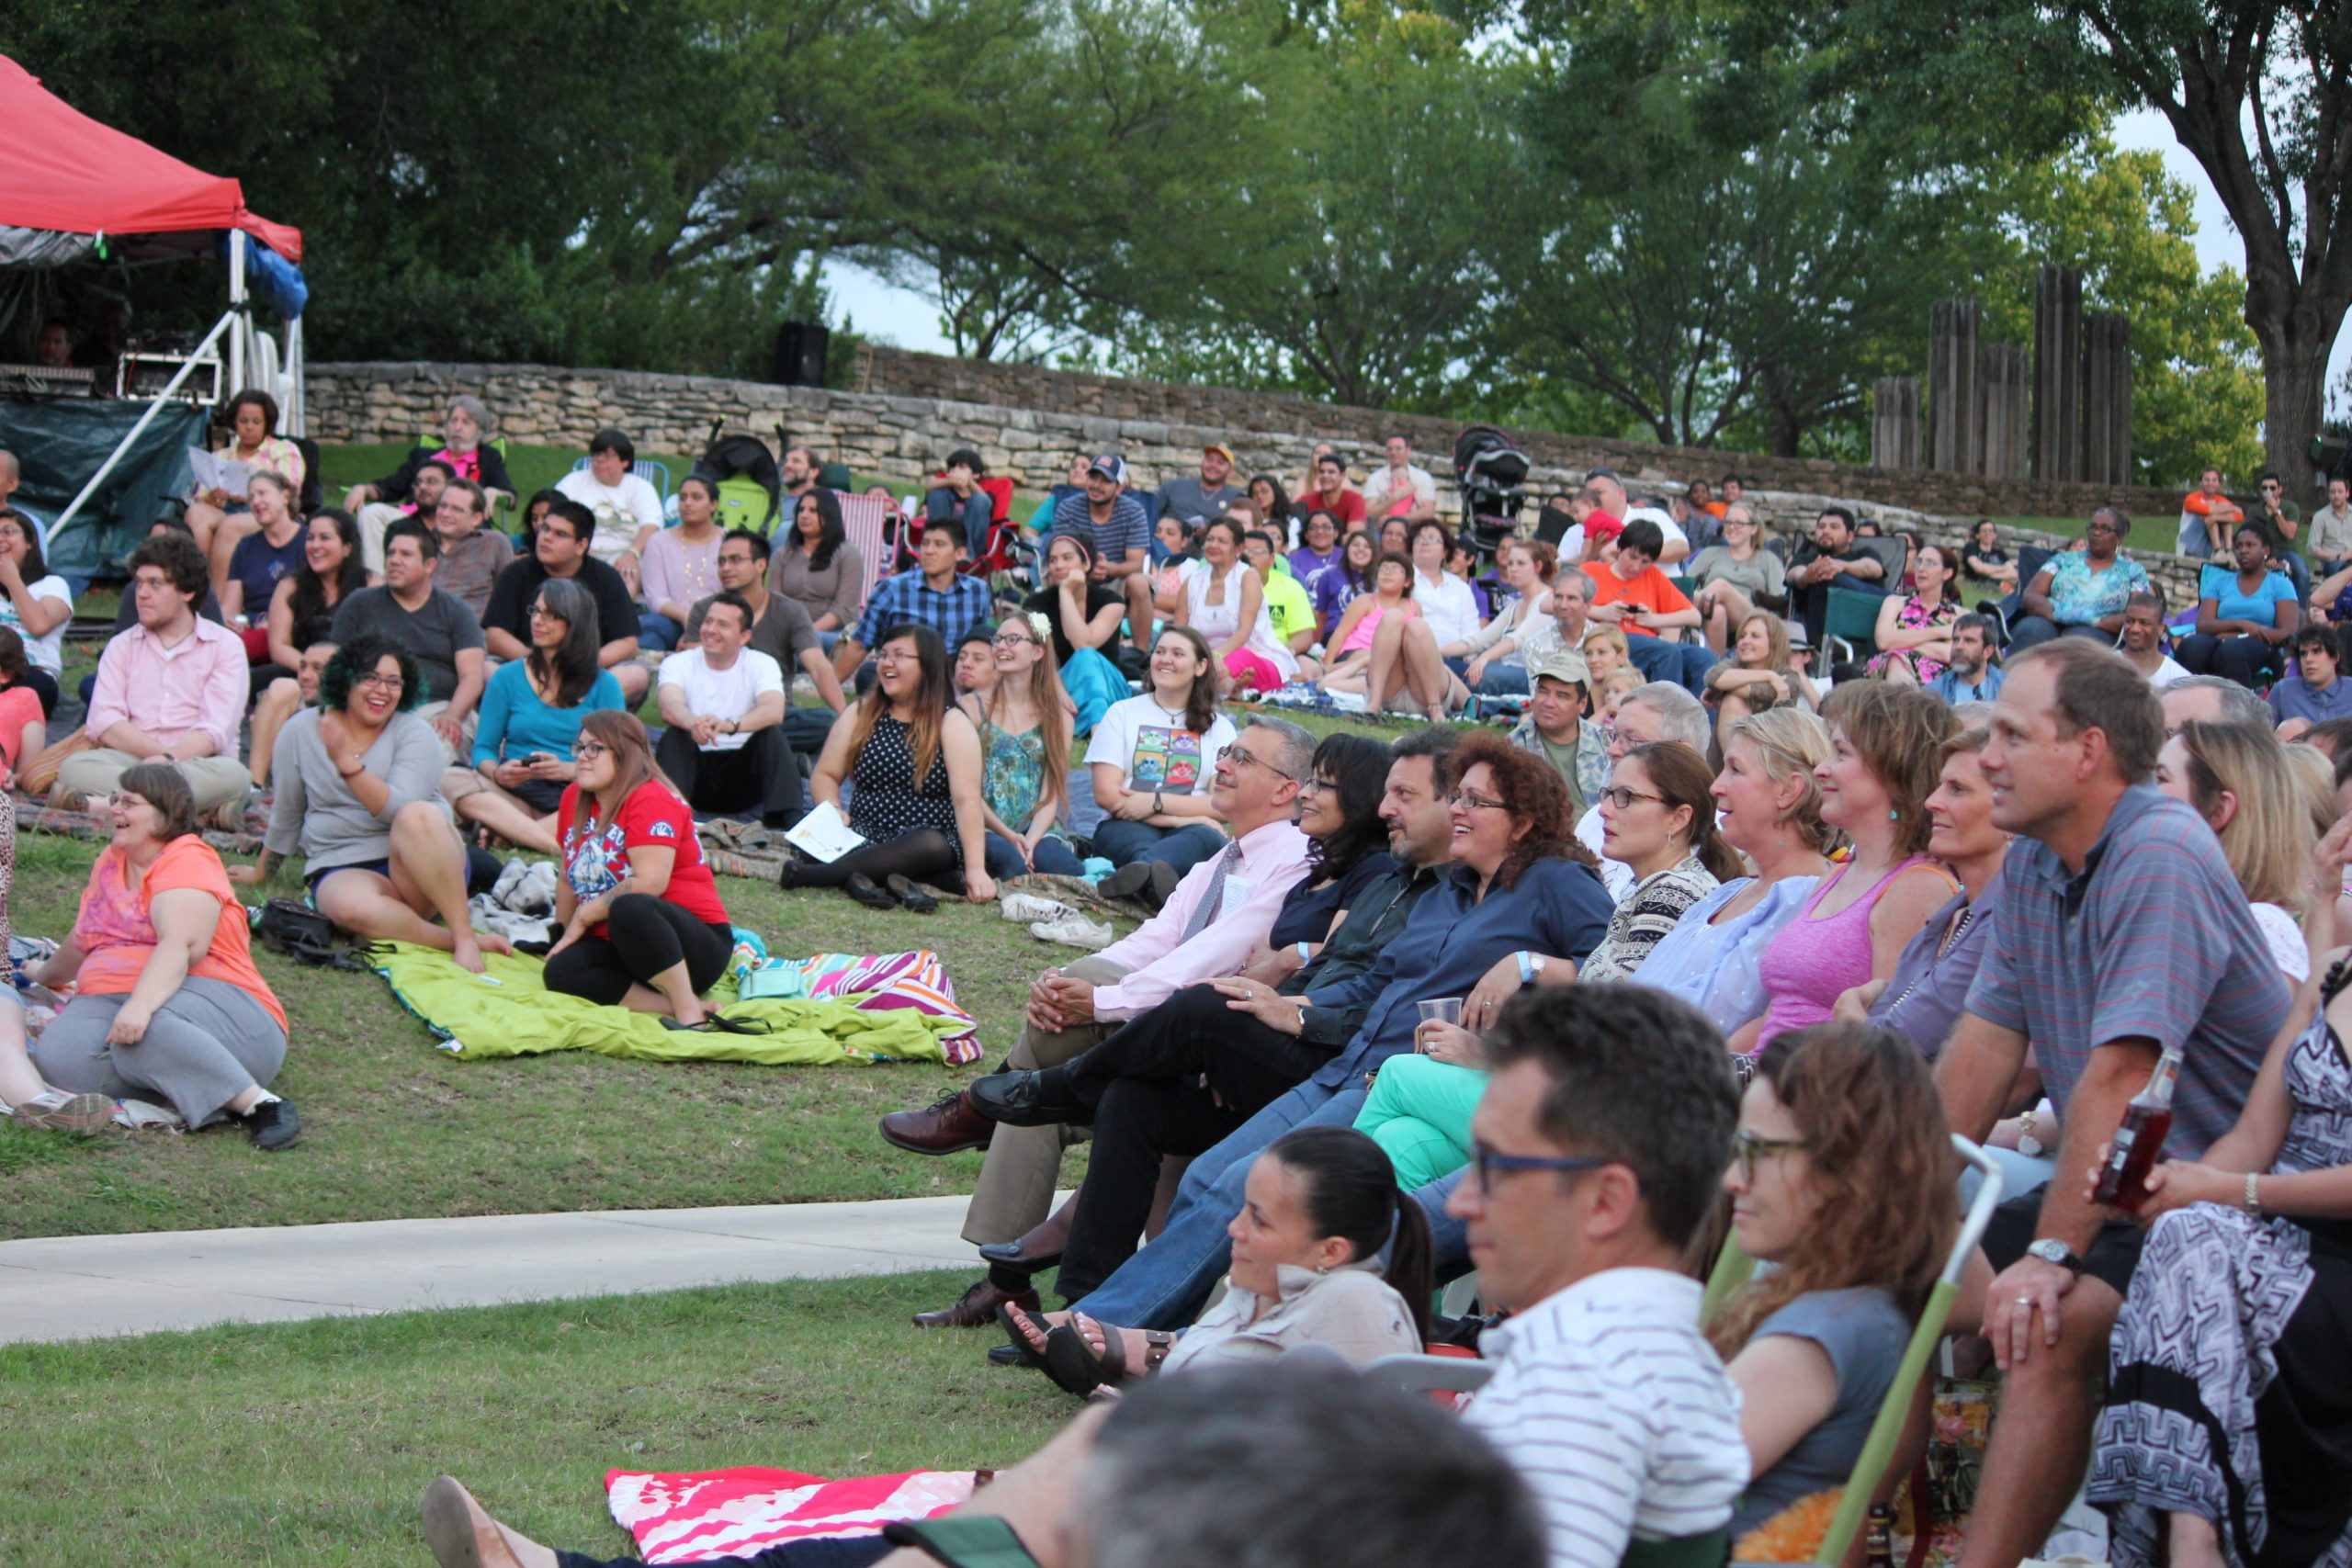 All smiles from an attentive audience. Photo by Melanie Robinson.